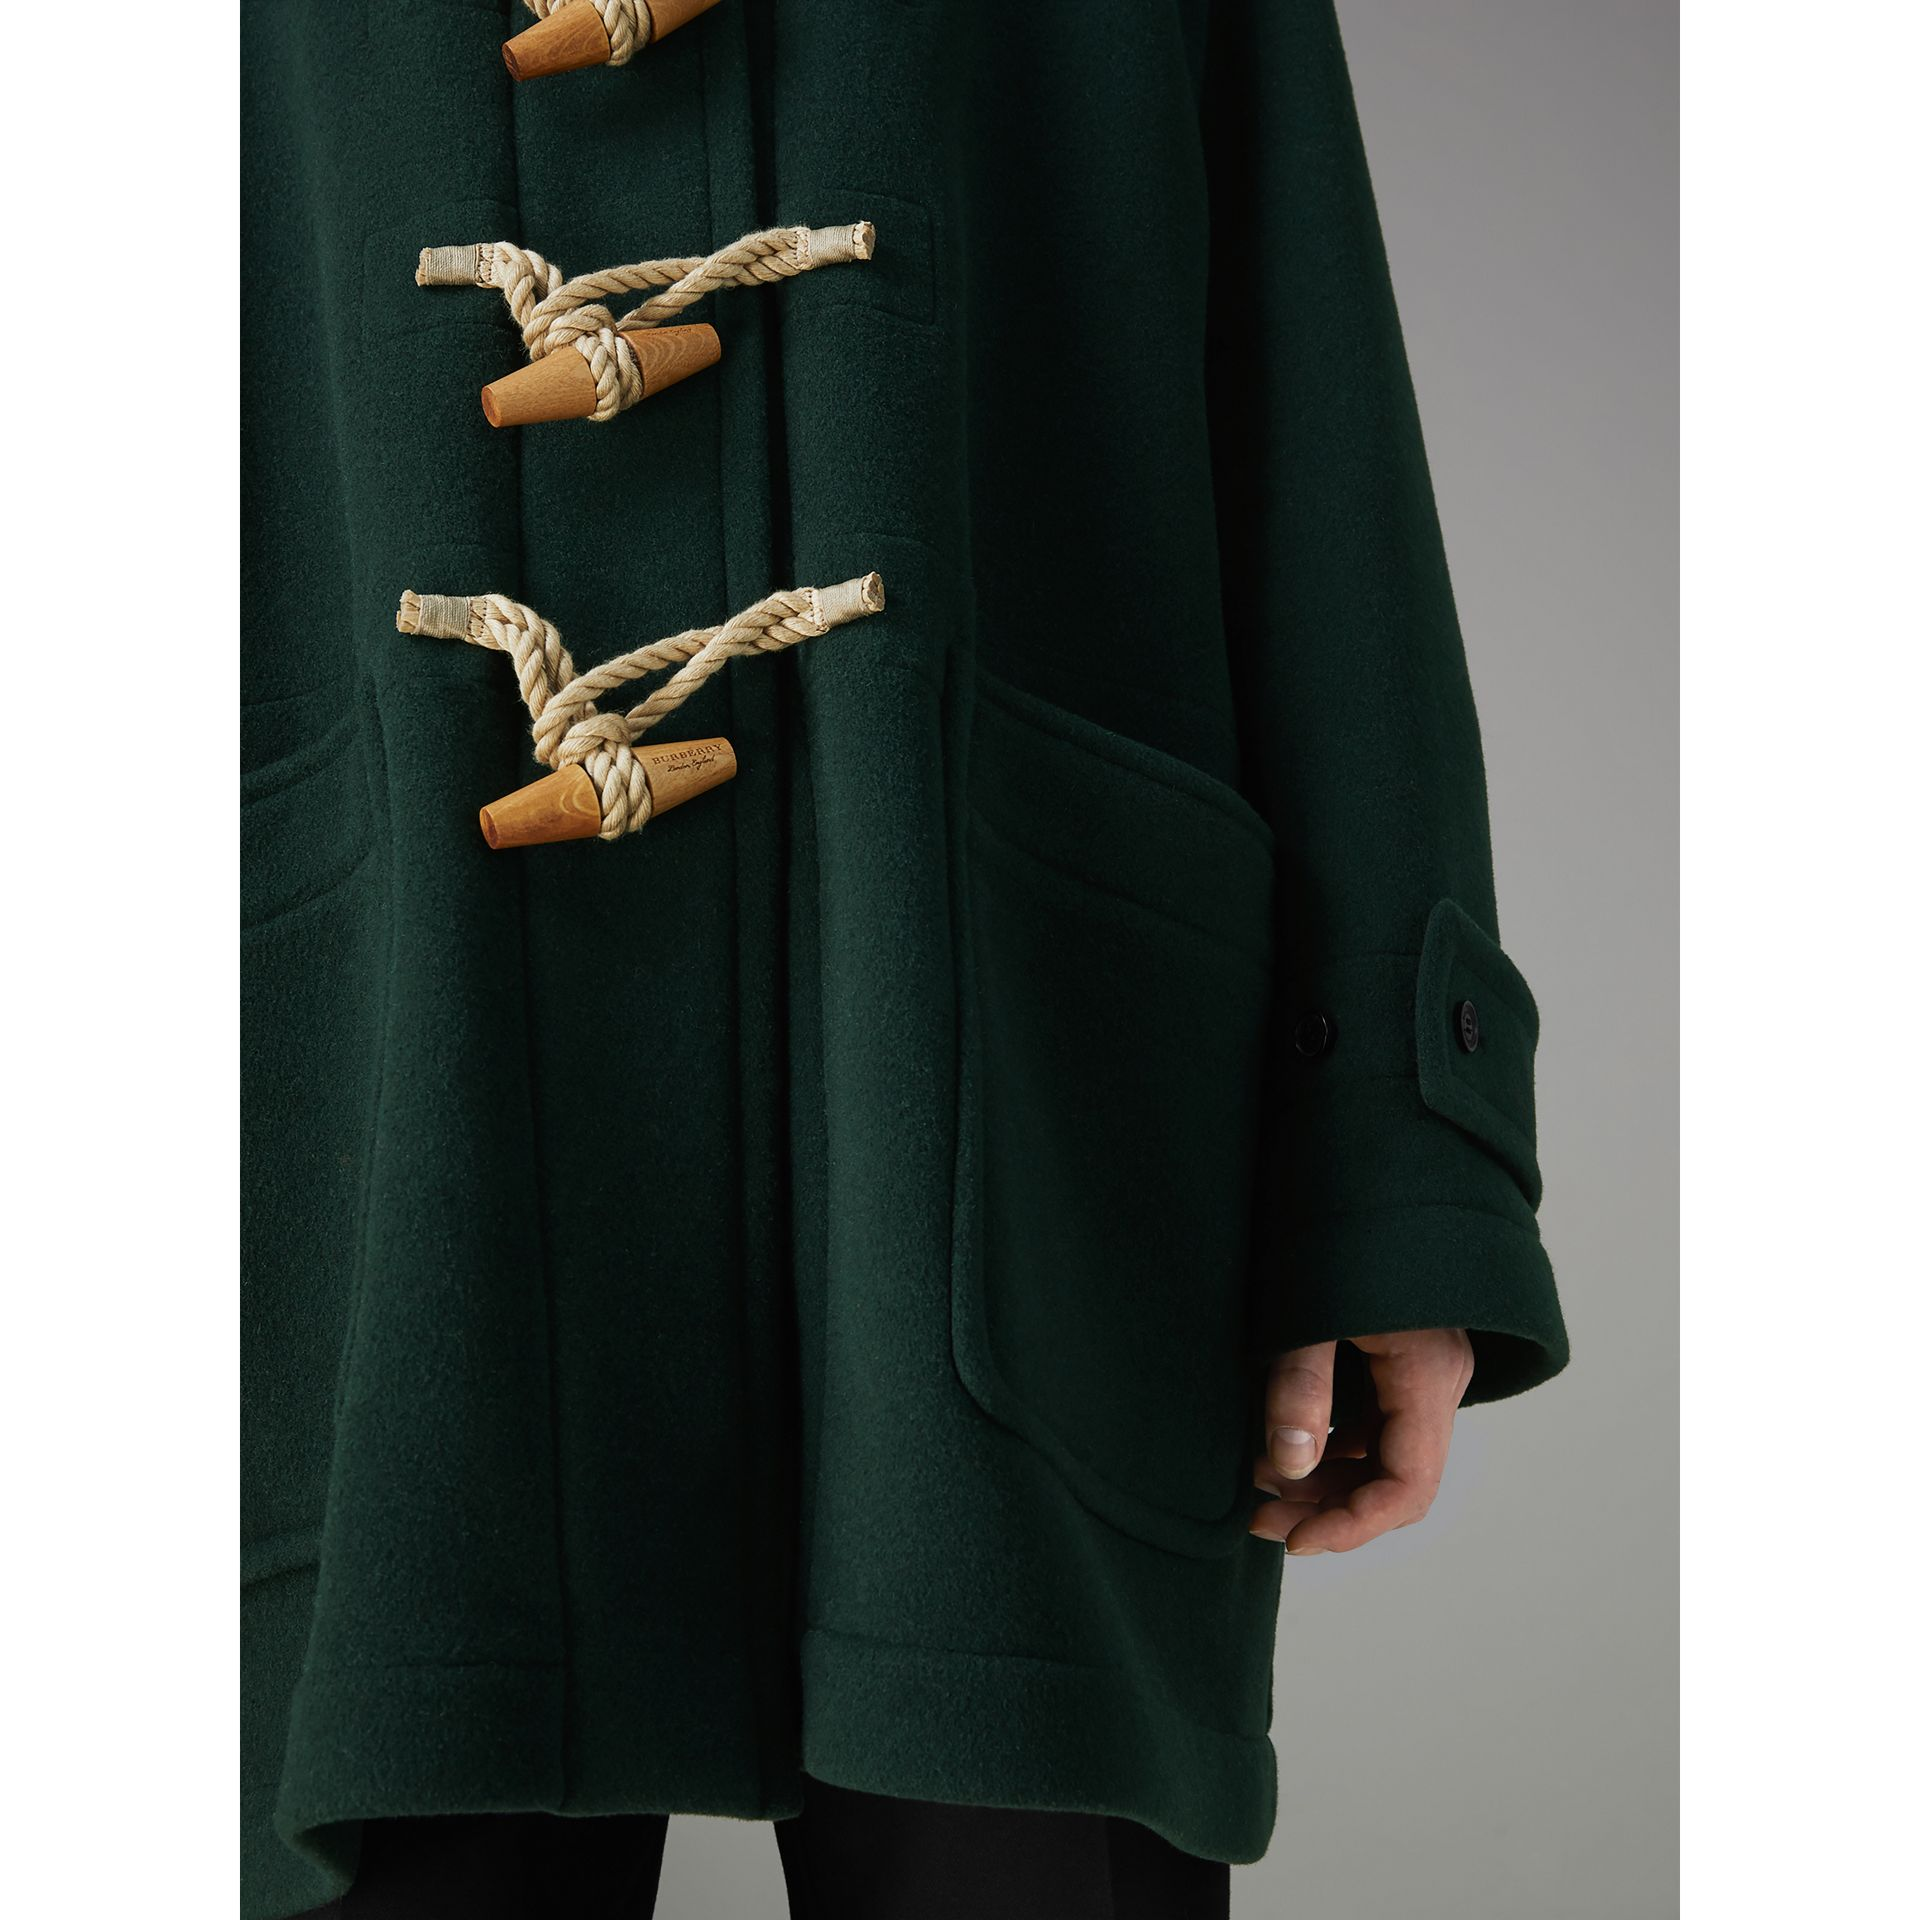 Gosha x Burberry Oversized Duffle Coat in Dark Forest Green | Burberry - gallery image 5